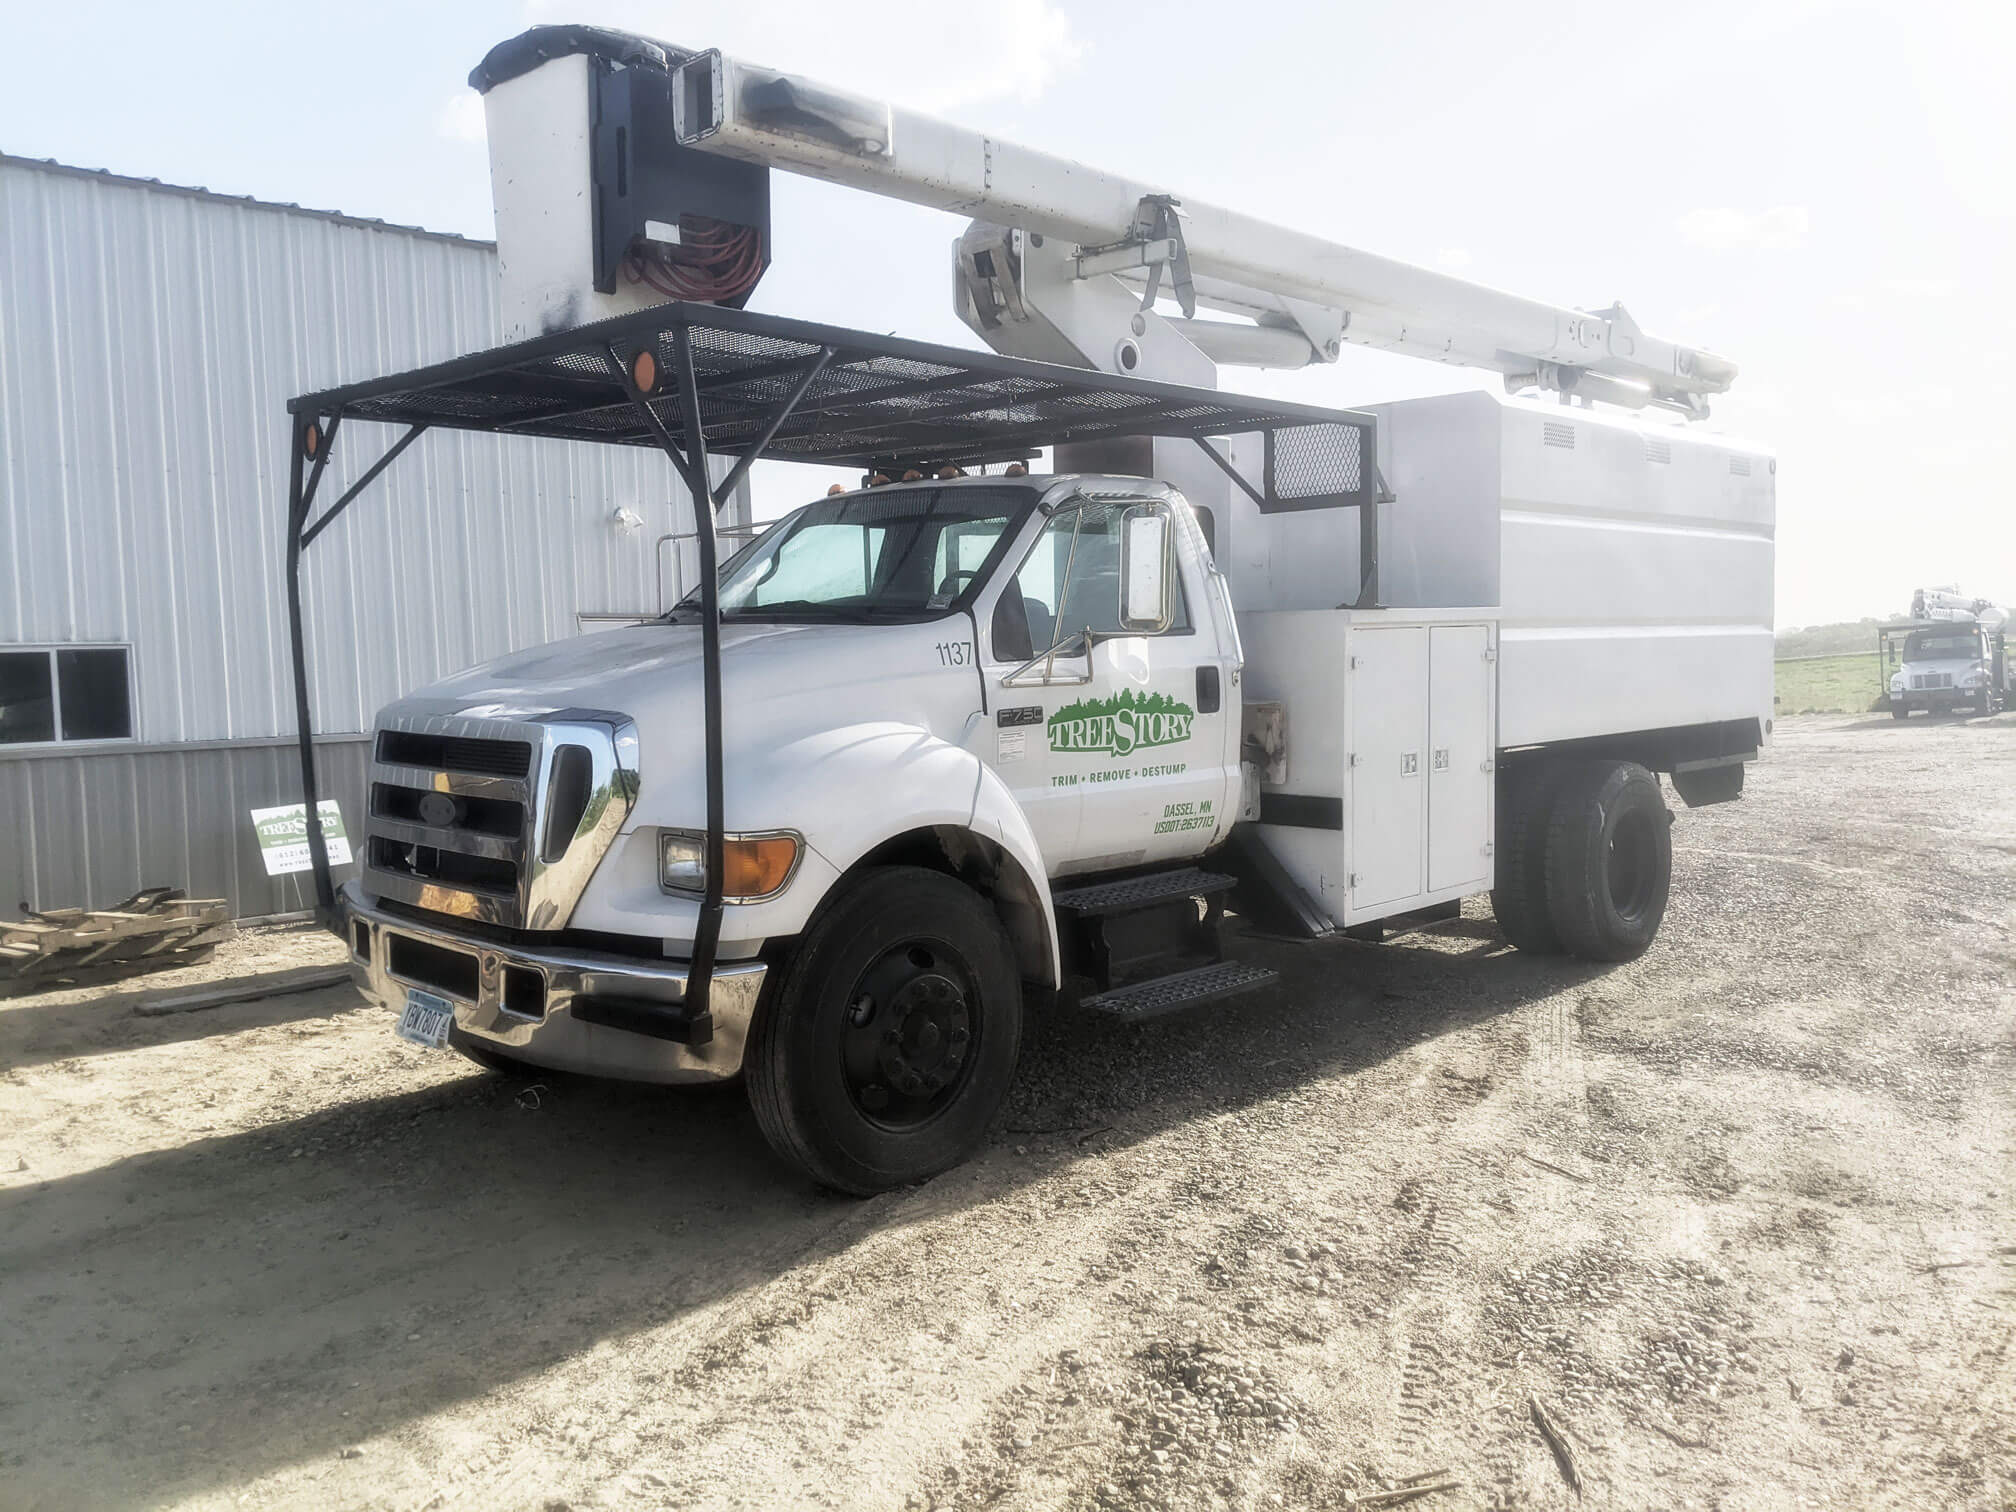 Treemaster truck parked on gravel behind metal shed. This allows TreeStory to cut in tight spaces for commercial tree projects